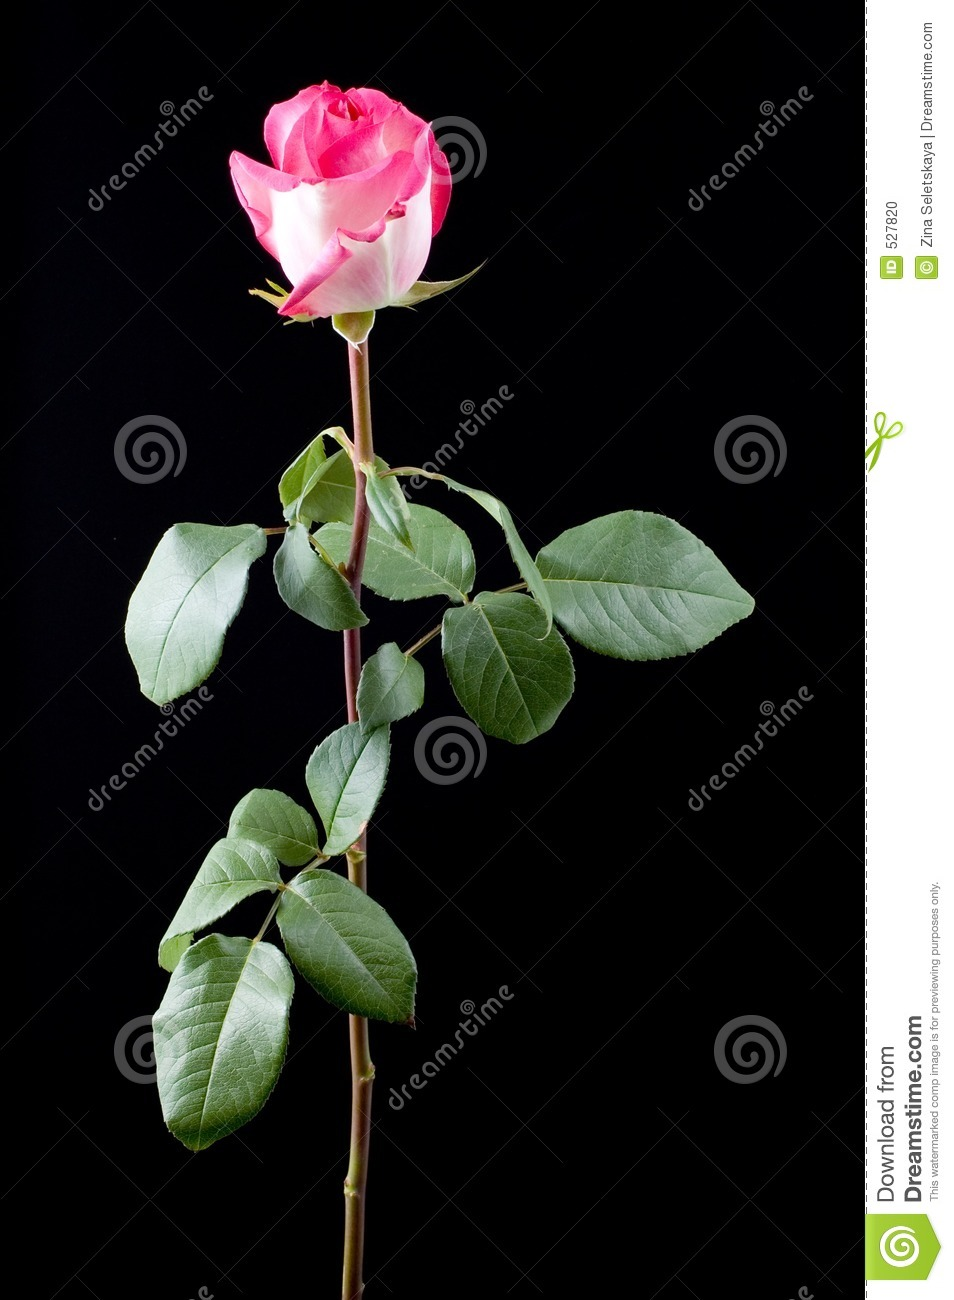 More similar stock images of ` Pink rose with long stem `